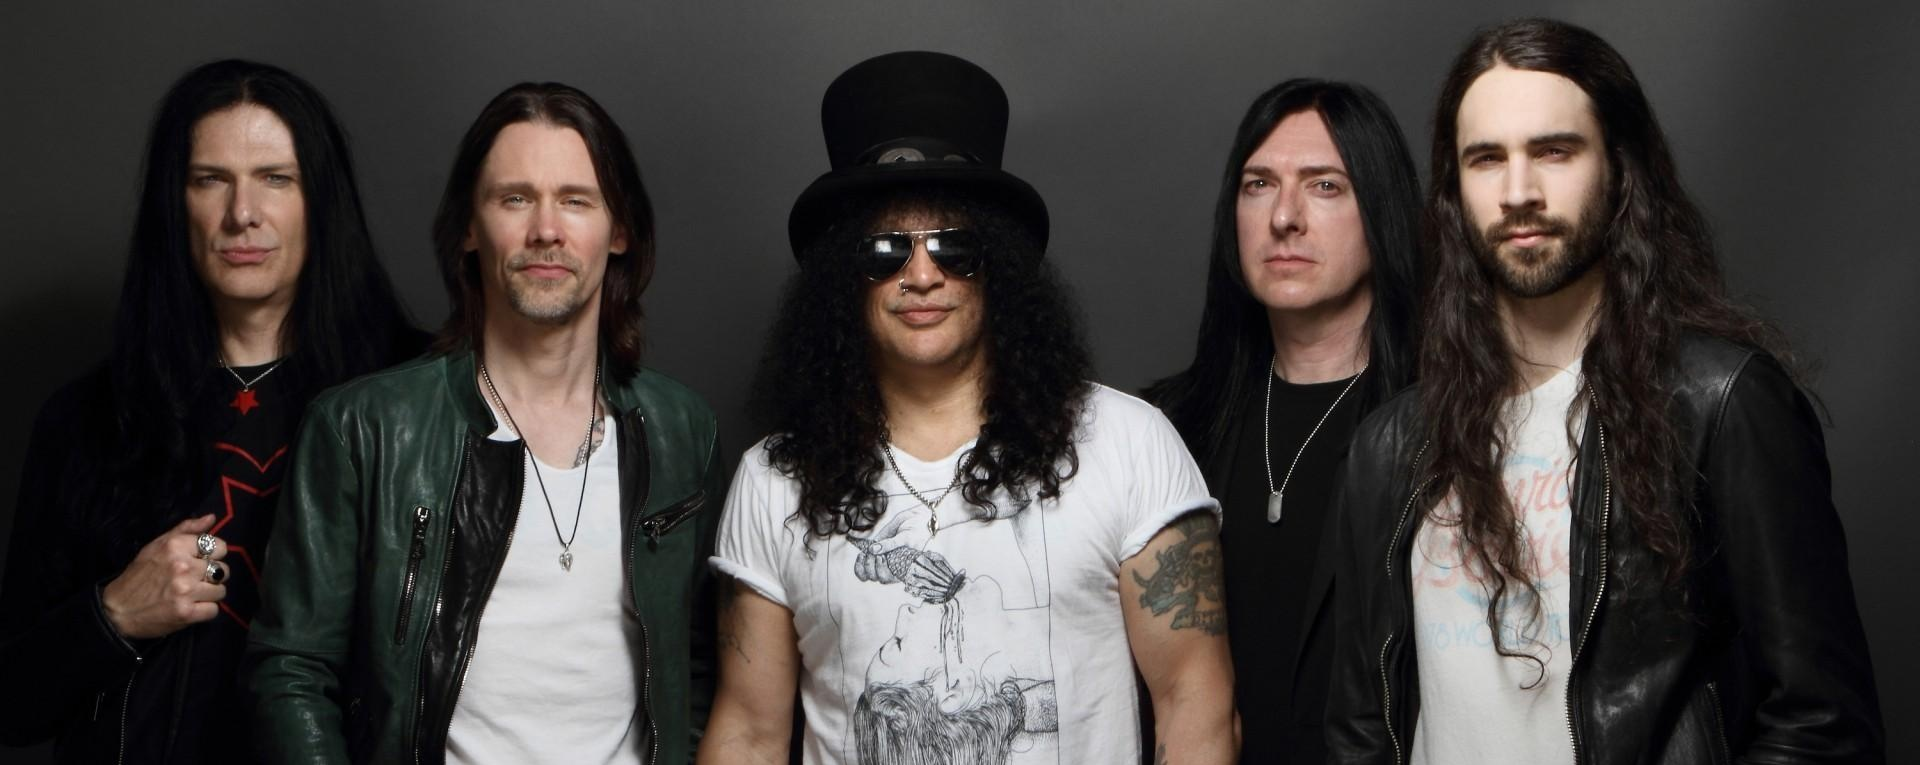 SLASH feat. Myles Kennedy & The Conspirators - Live in Singapore